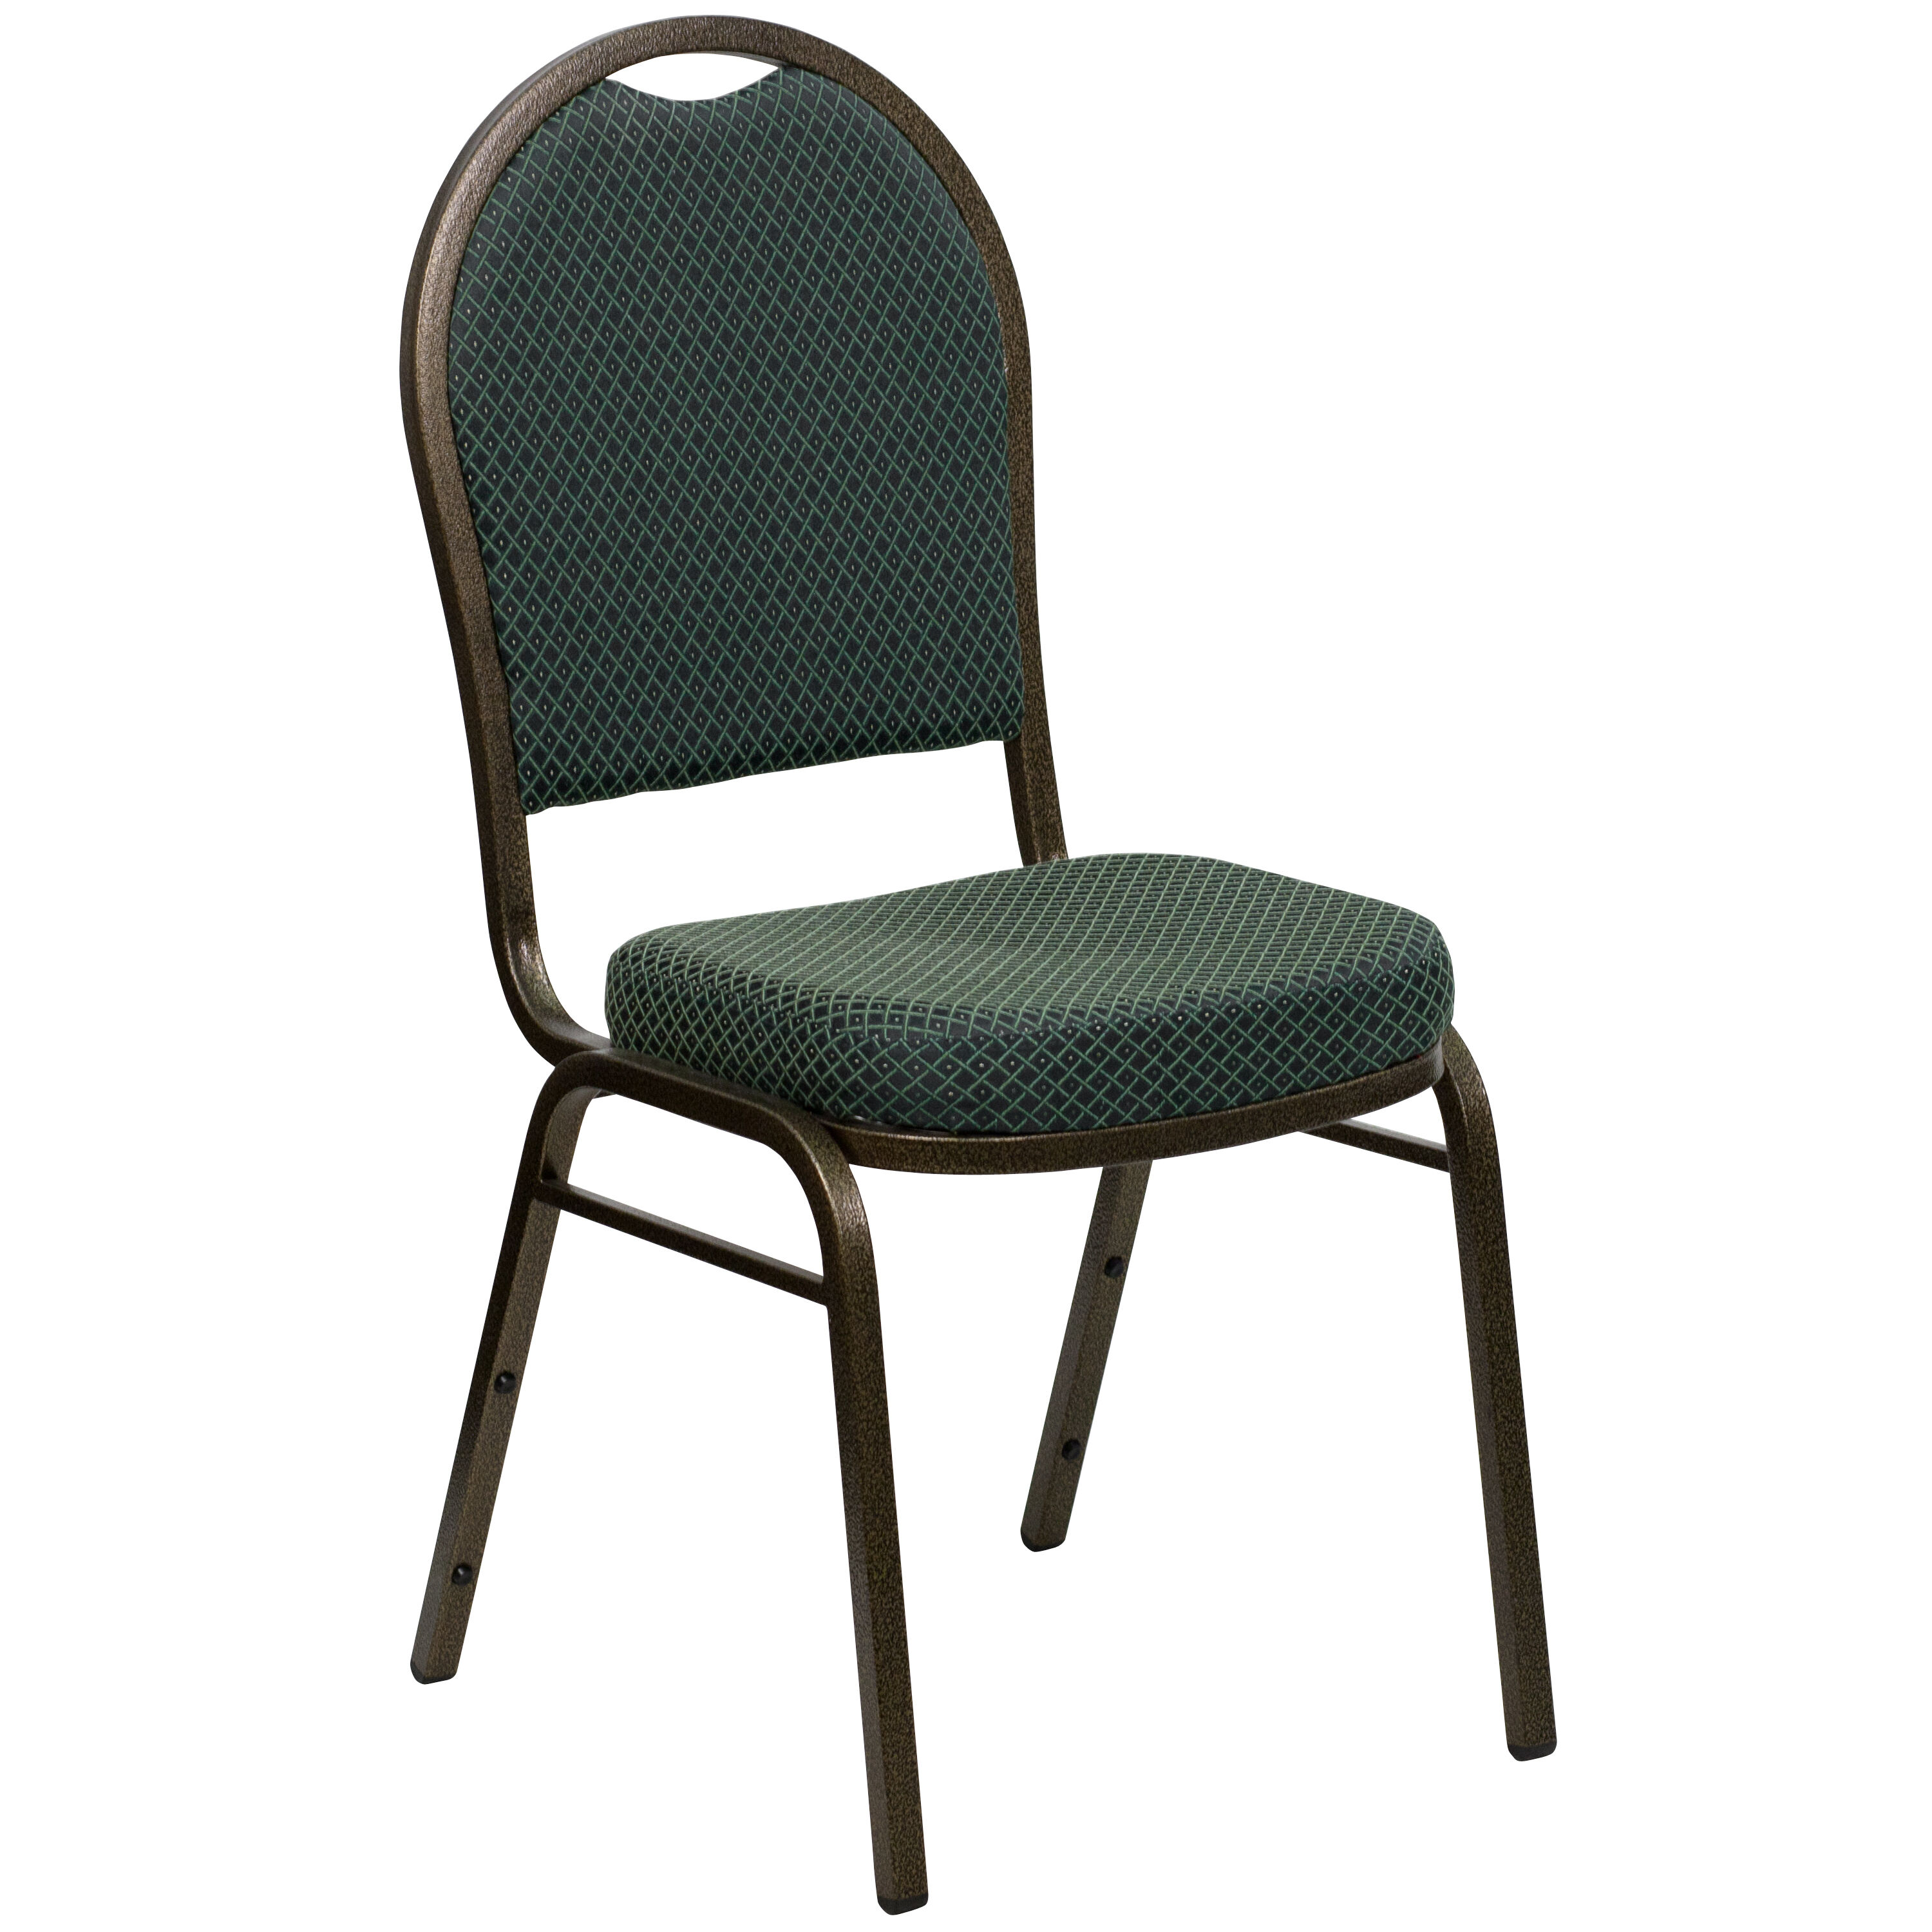 stackable chairs for less heavy duty folding lawn green fabric banquet chair fd c03 goldvein 4003 gg